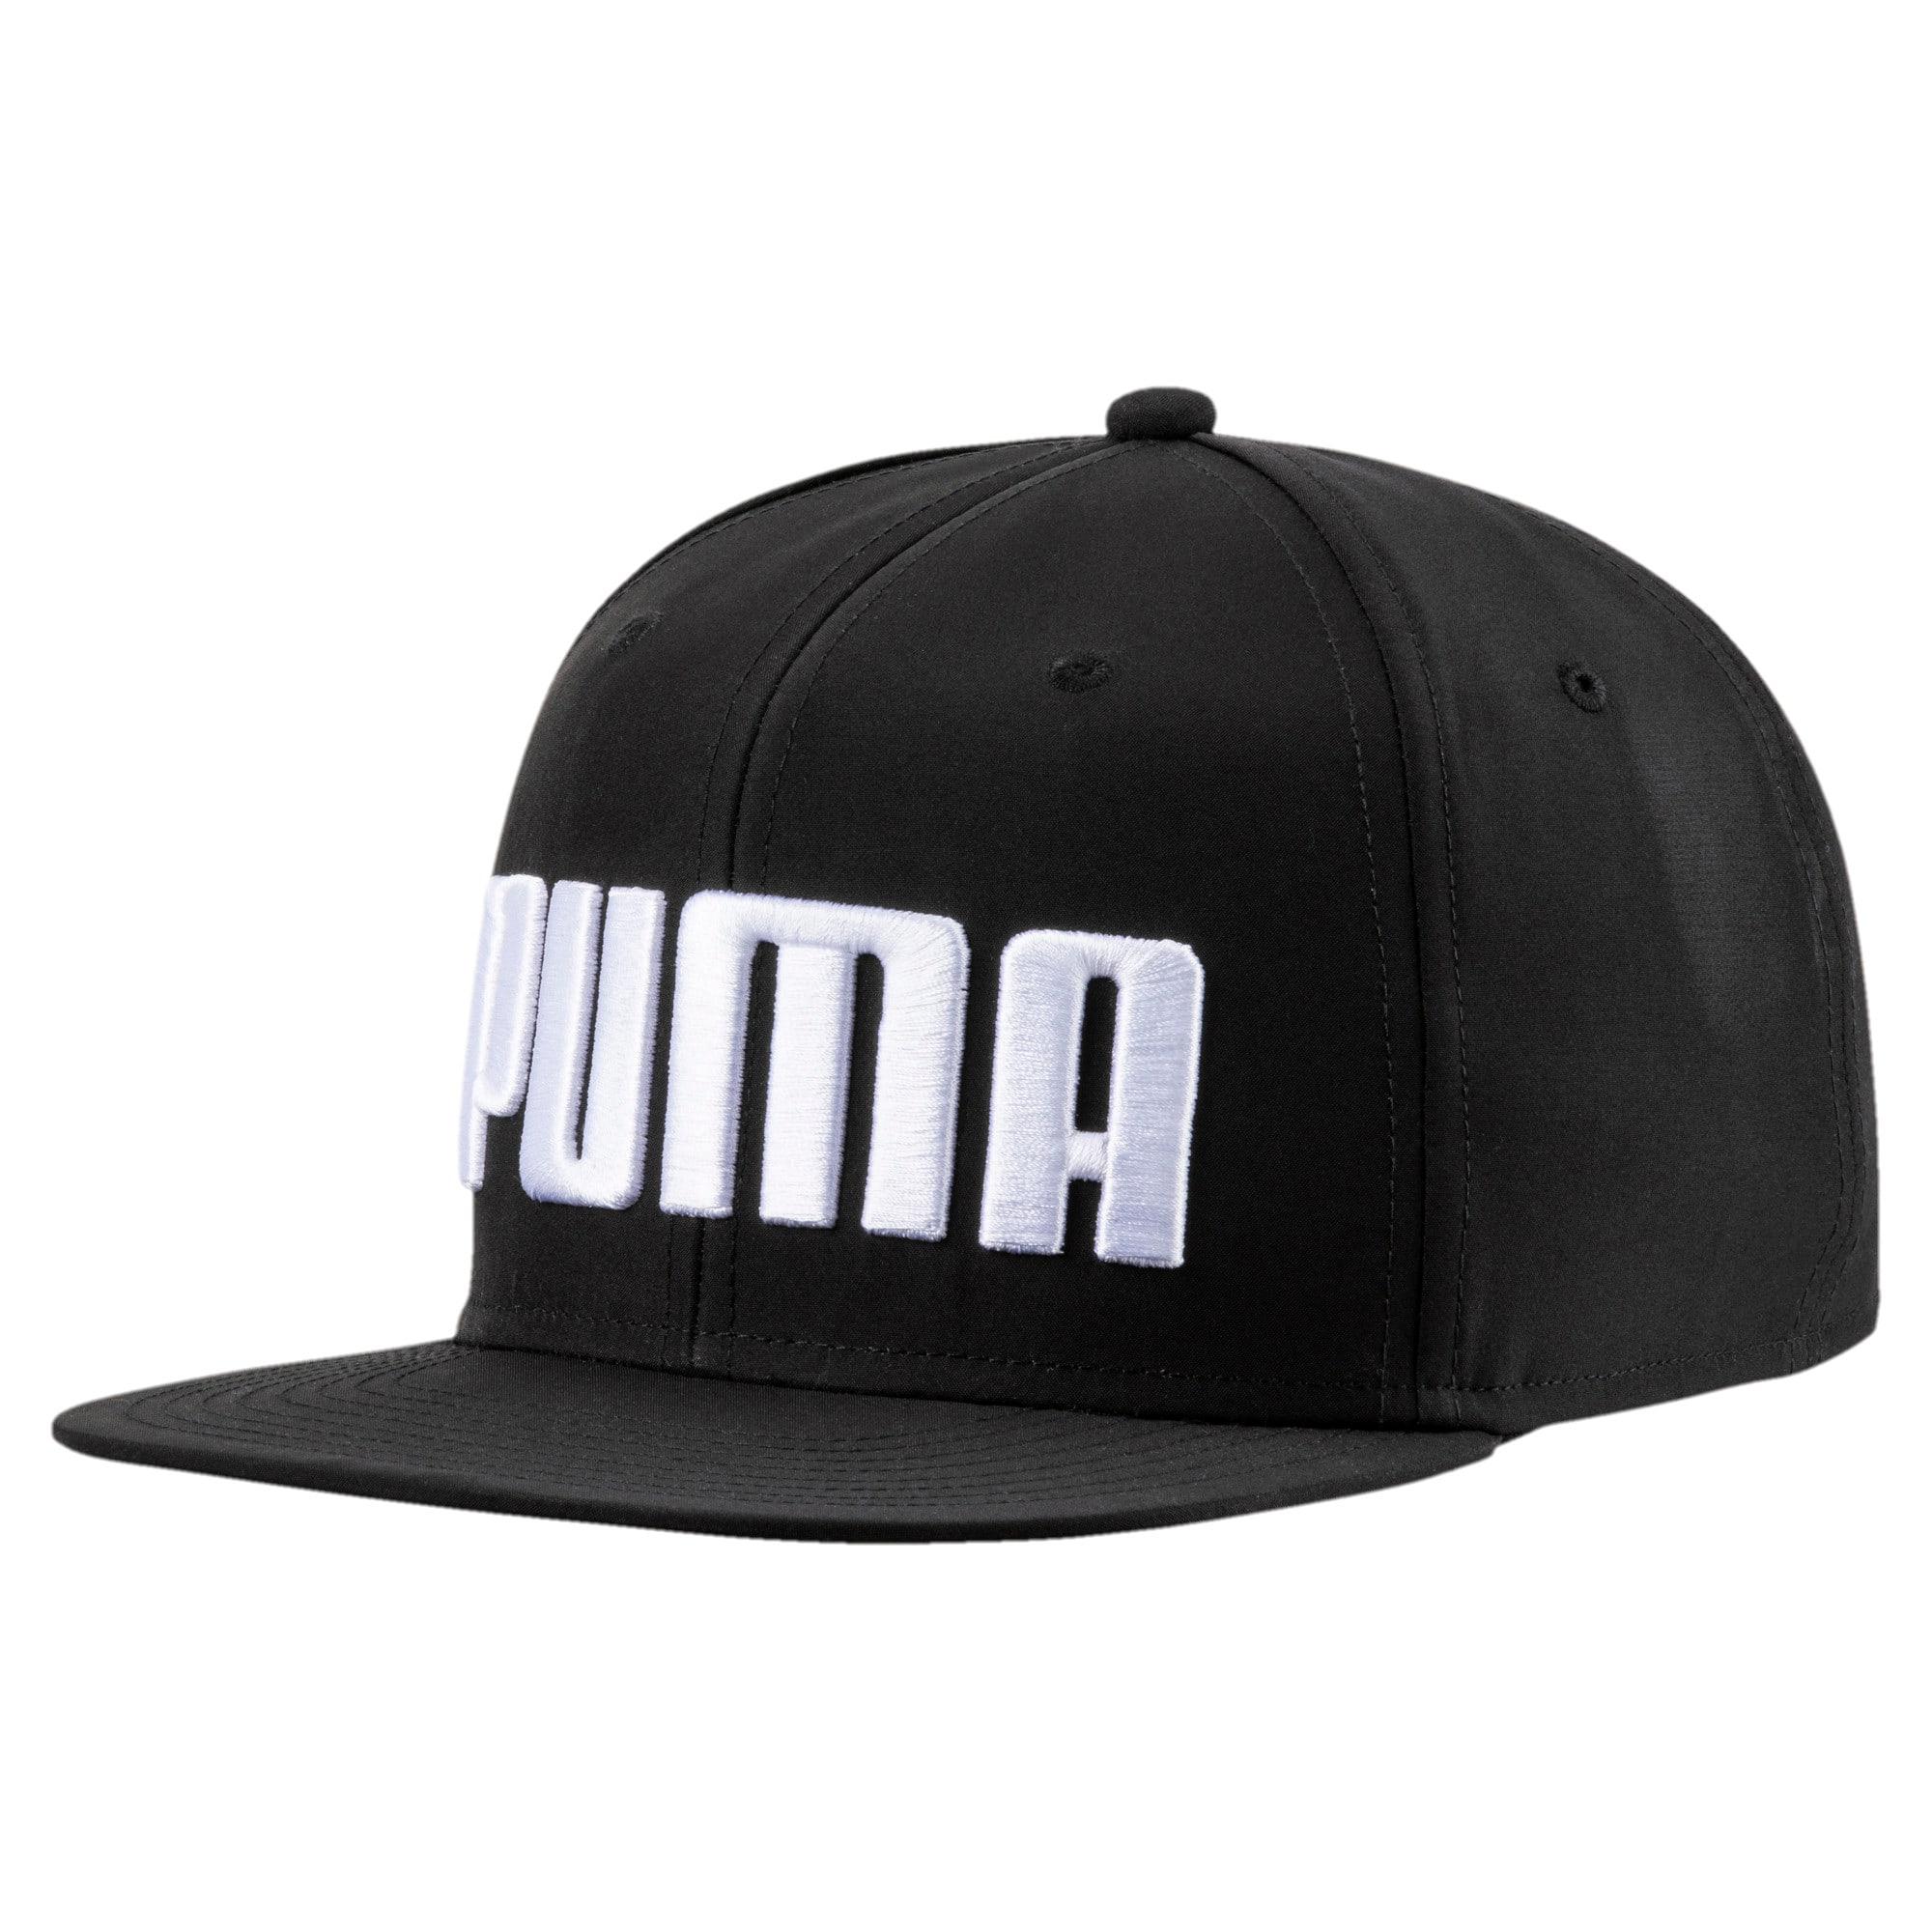 Thumbnail 1 of Flat Brim Kids' Cap, Puma Black, medium-IND